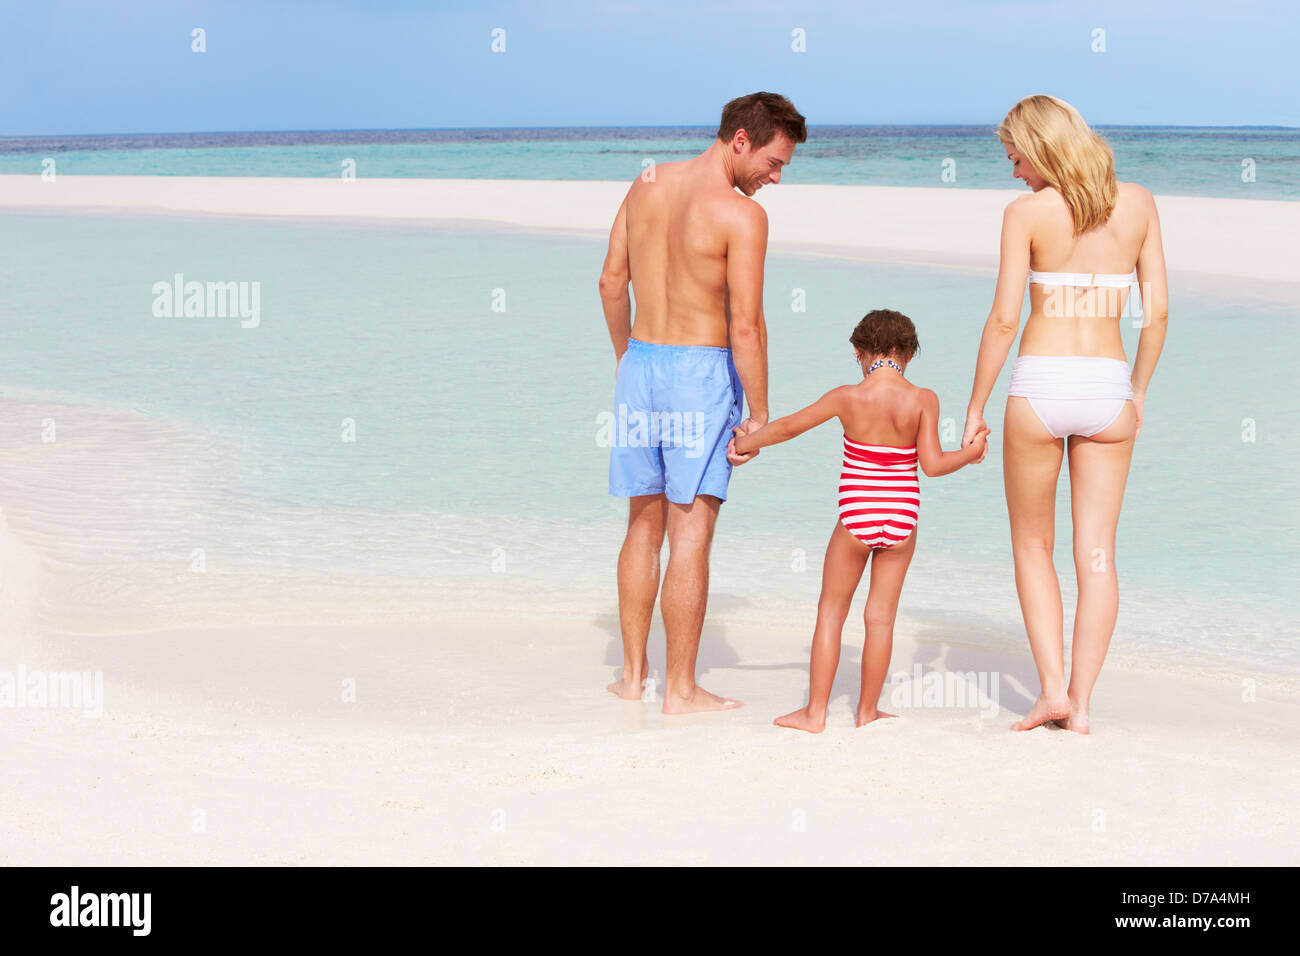 Family Having Fun In Sea On Beach Holiday - Stock Image